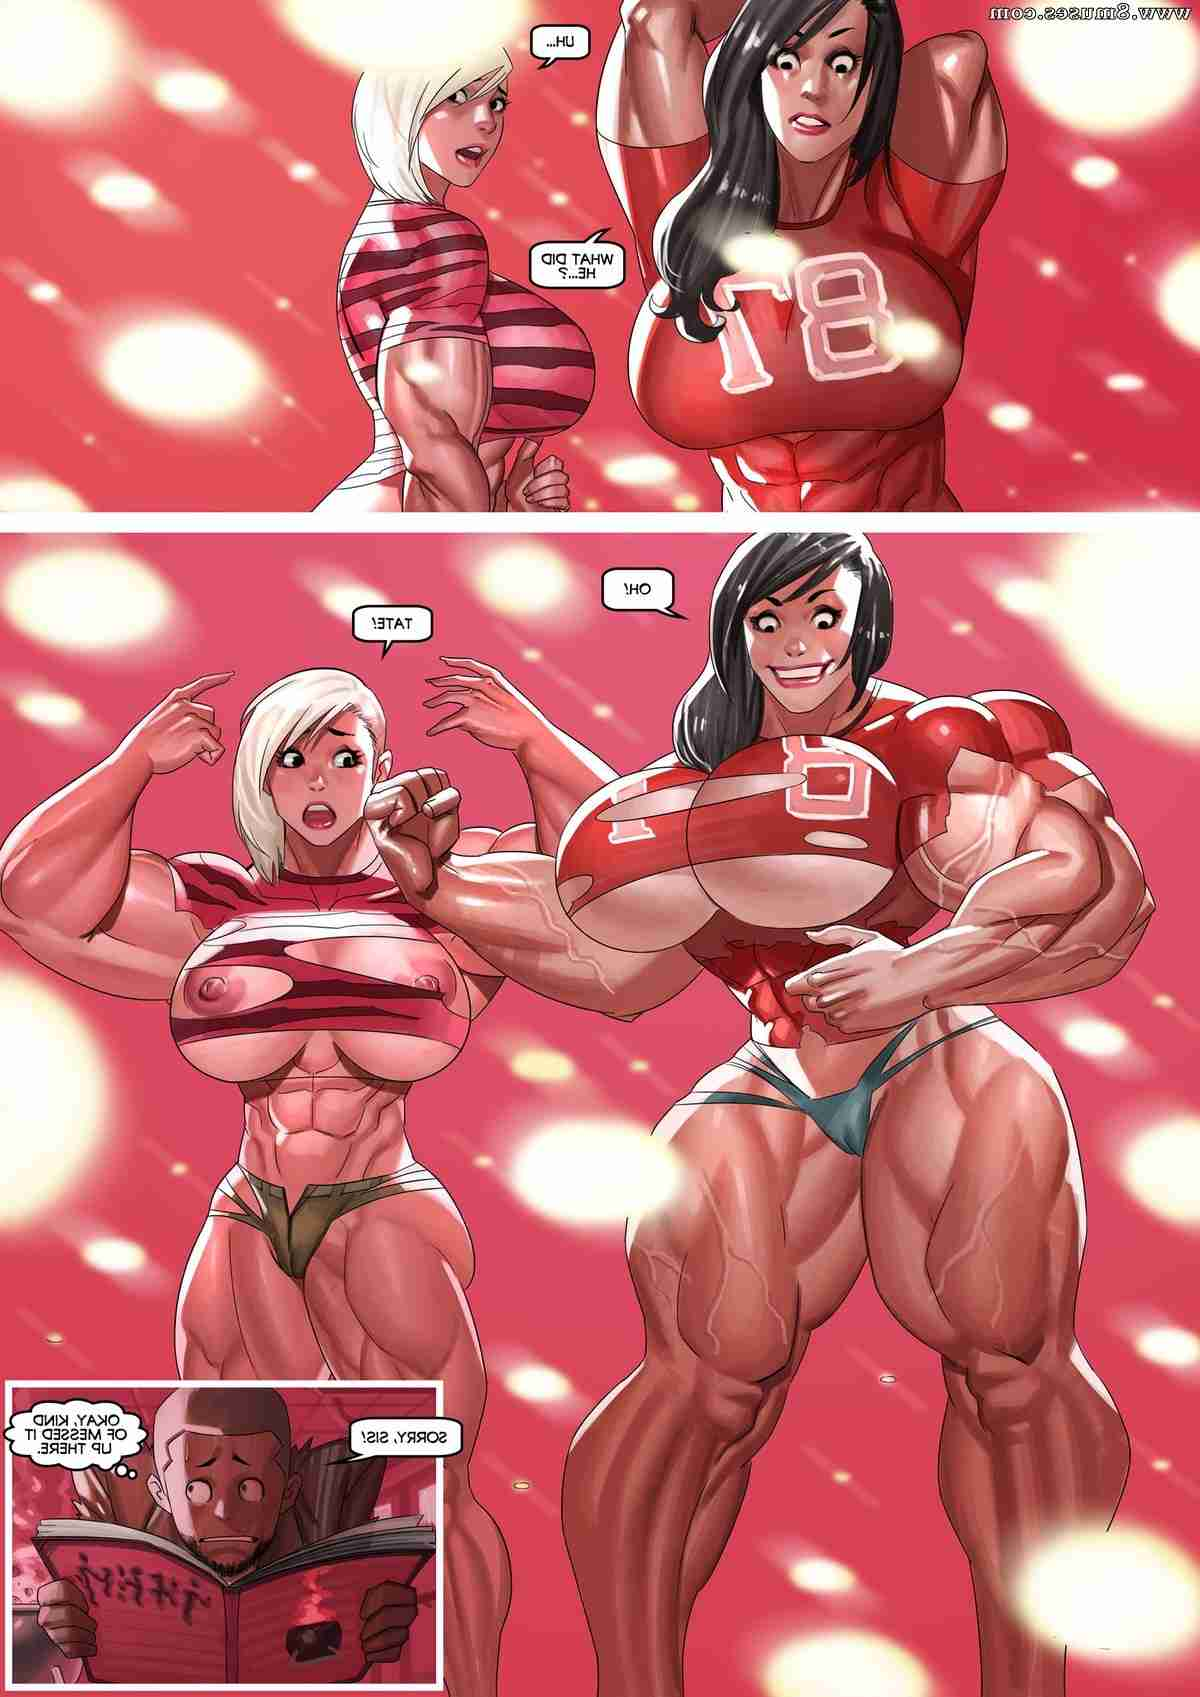 MuscleFan-Comics/The-Ever-Changing-World The_Ever-Changing_World__8muses_-_Sex_and_Porn_Comics_24.jpg